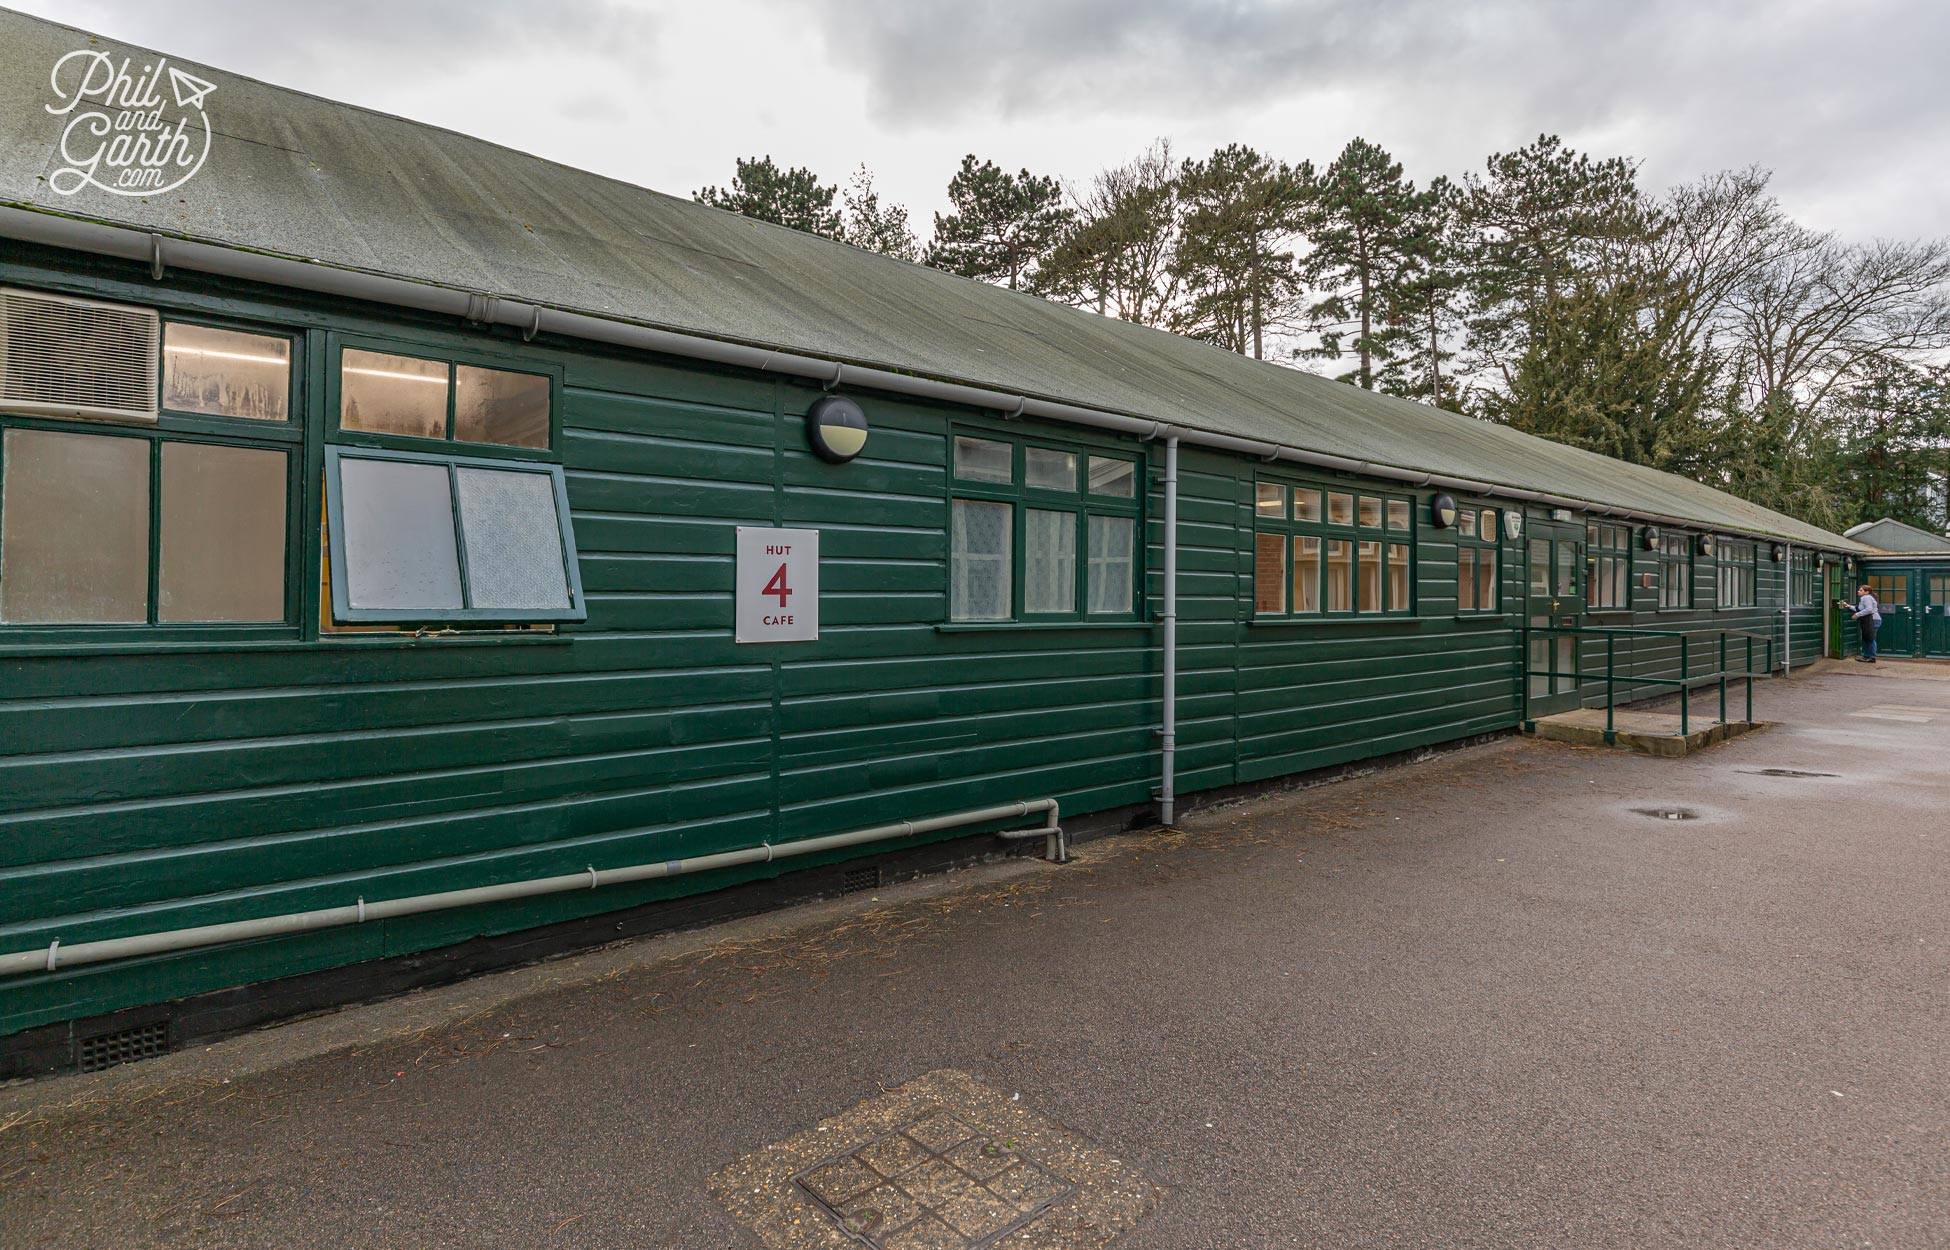 Hut 4 is now the cafe